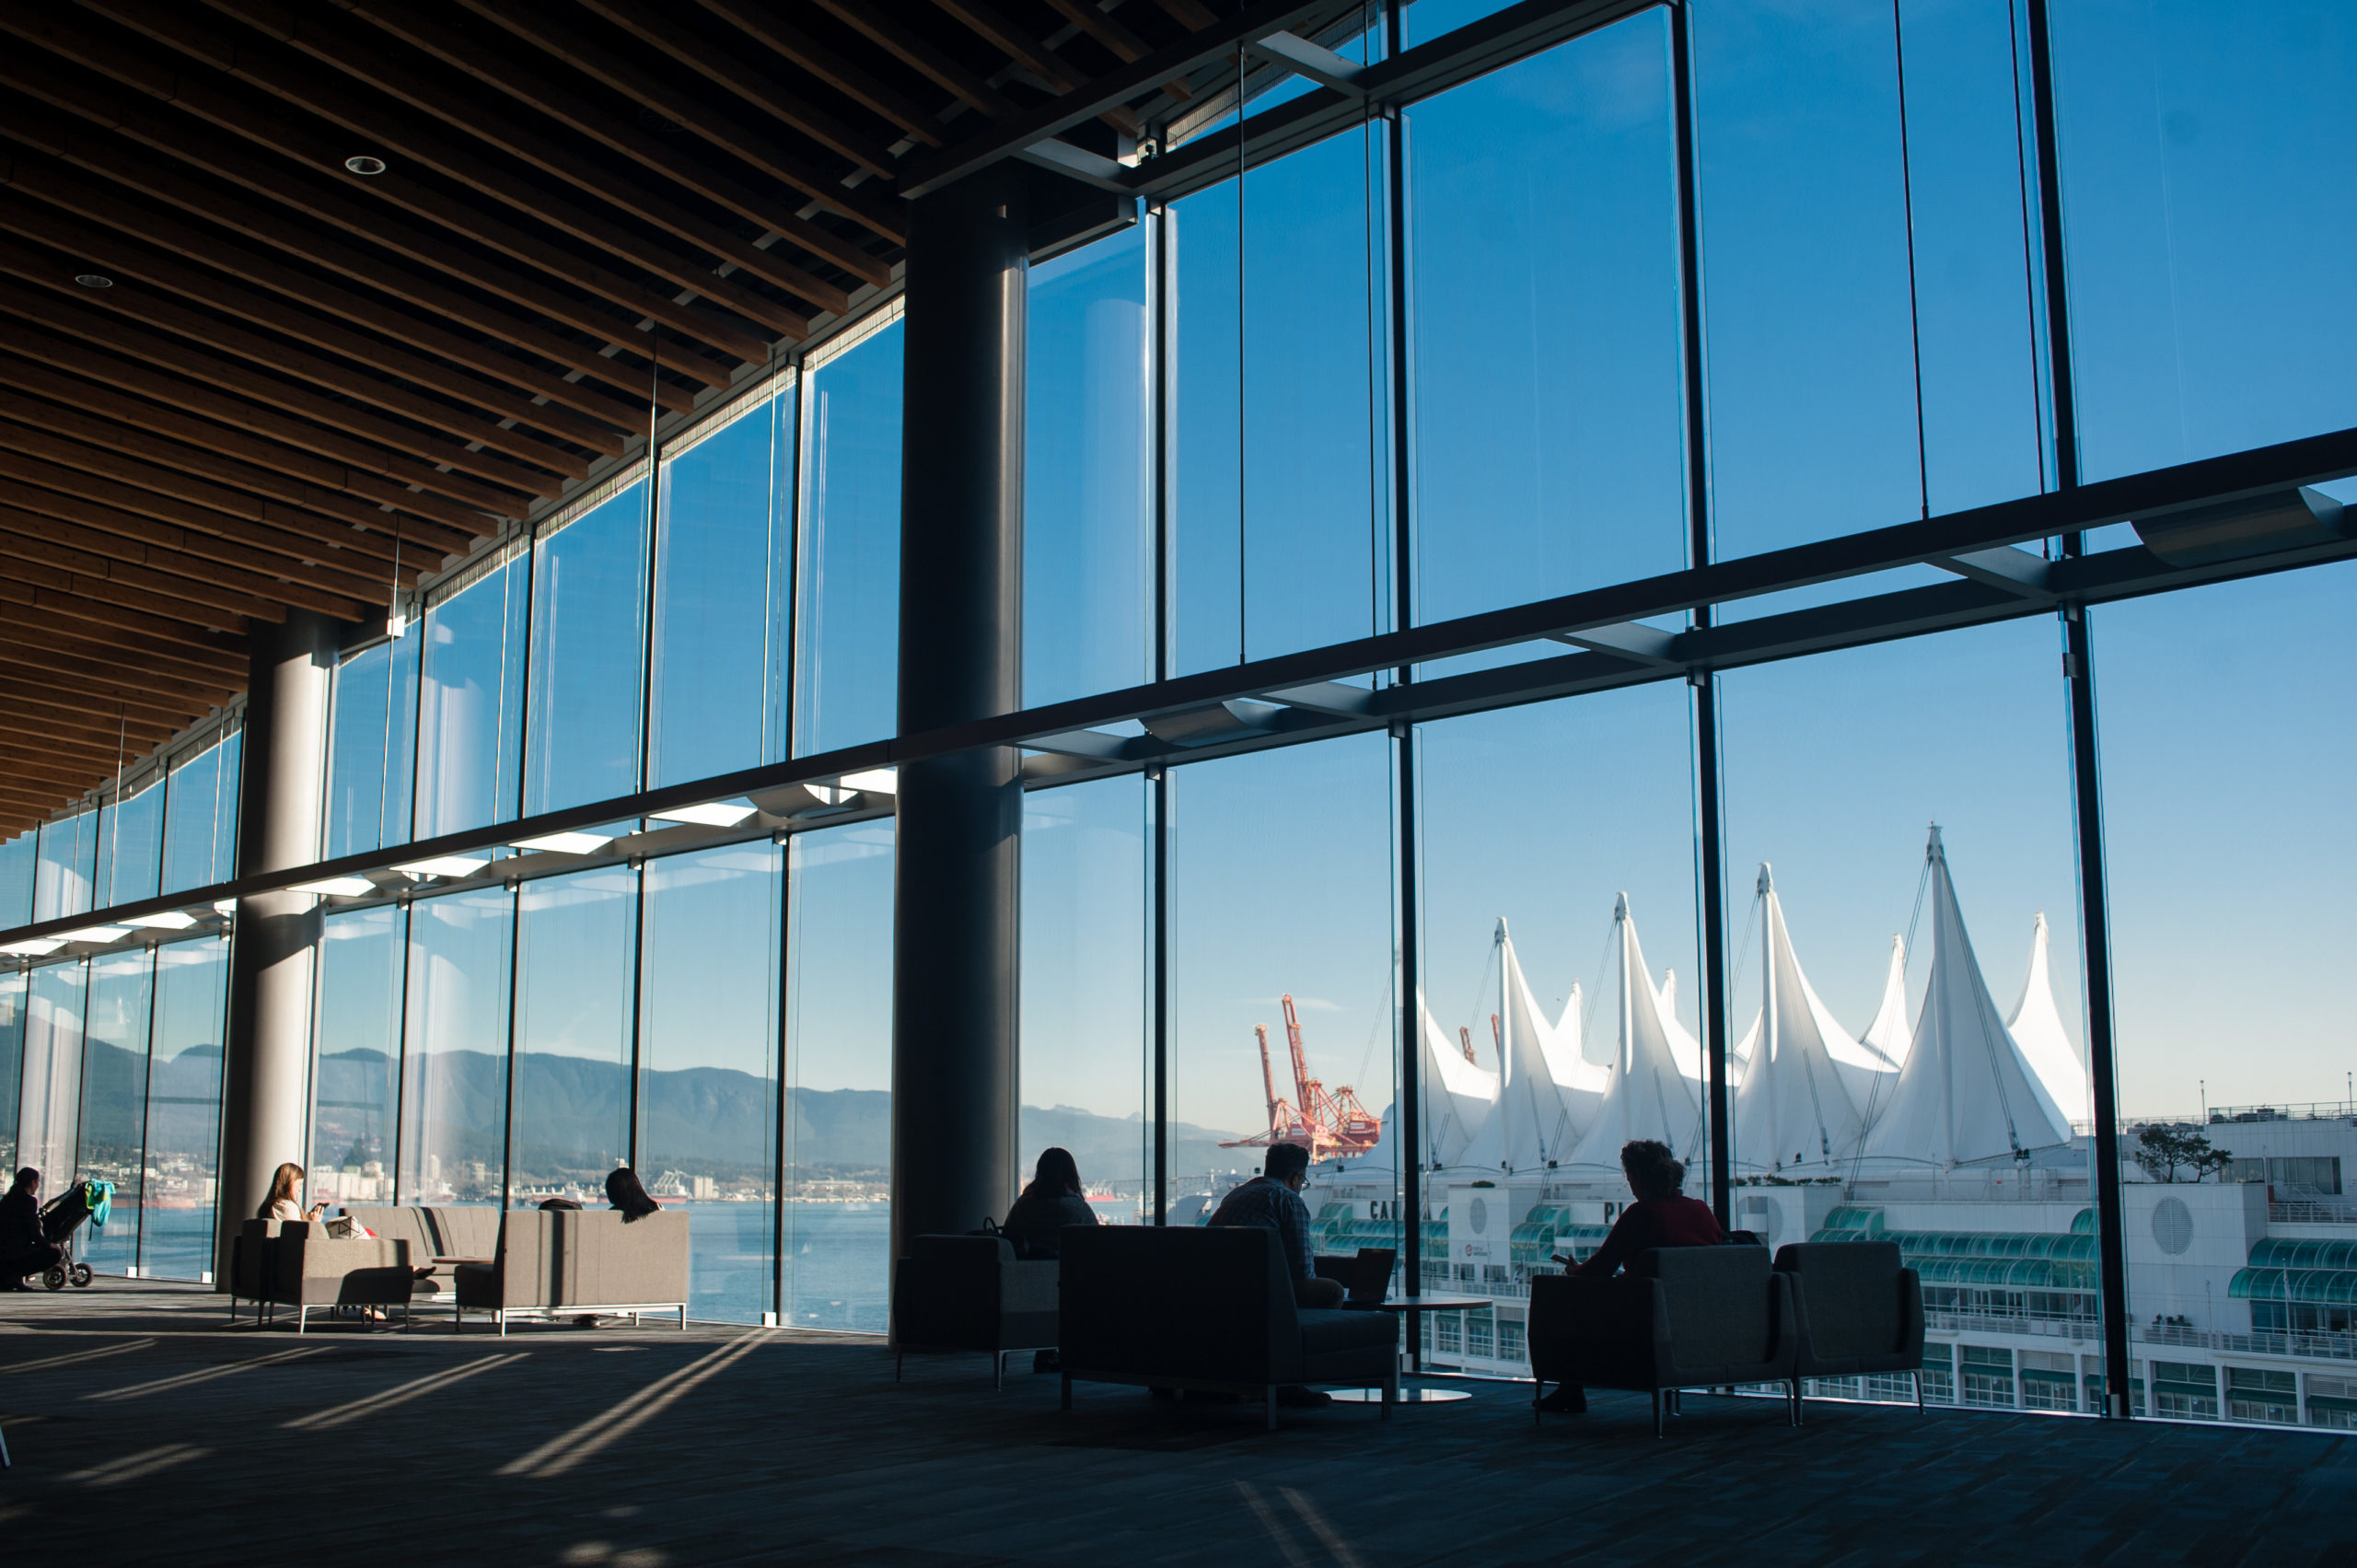 Photo from inside of the Vancouver Convention Center of the outside view through its windows.